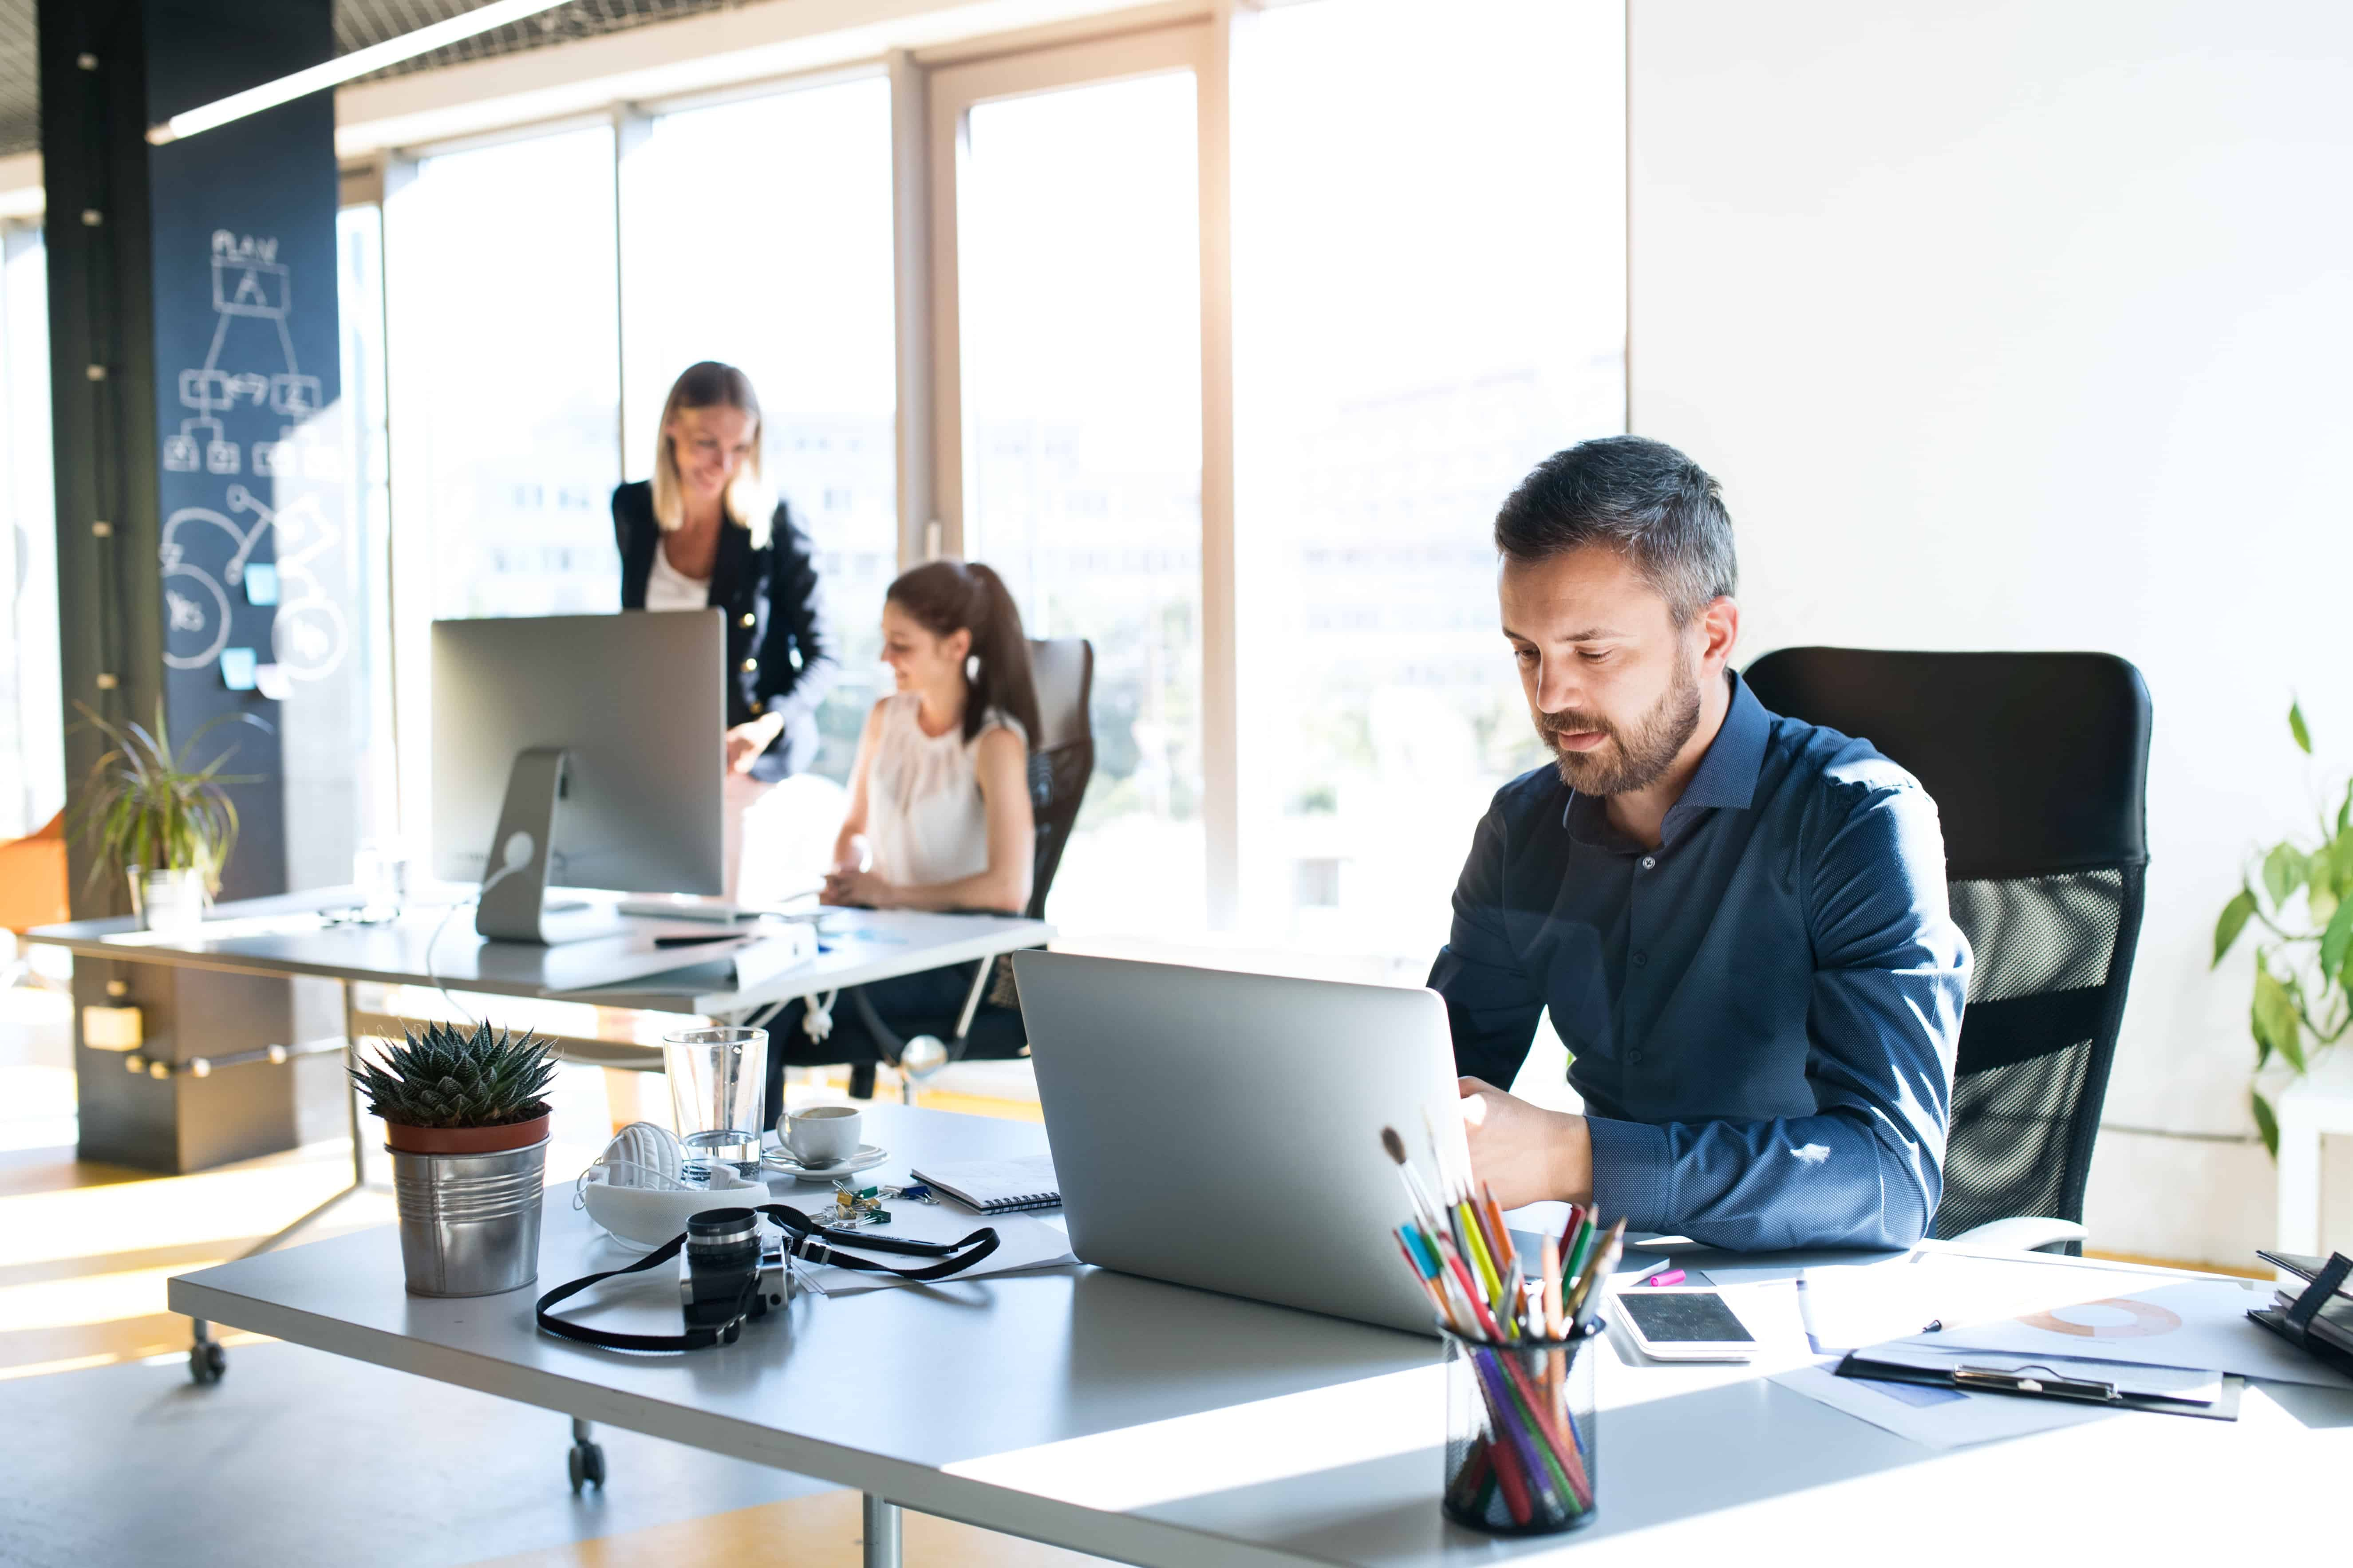 3 people sitting at their desks in a modern office space